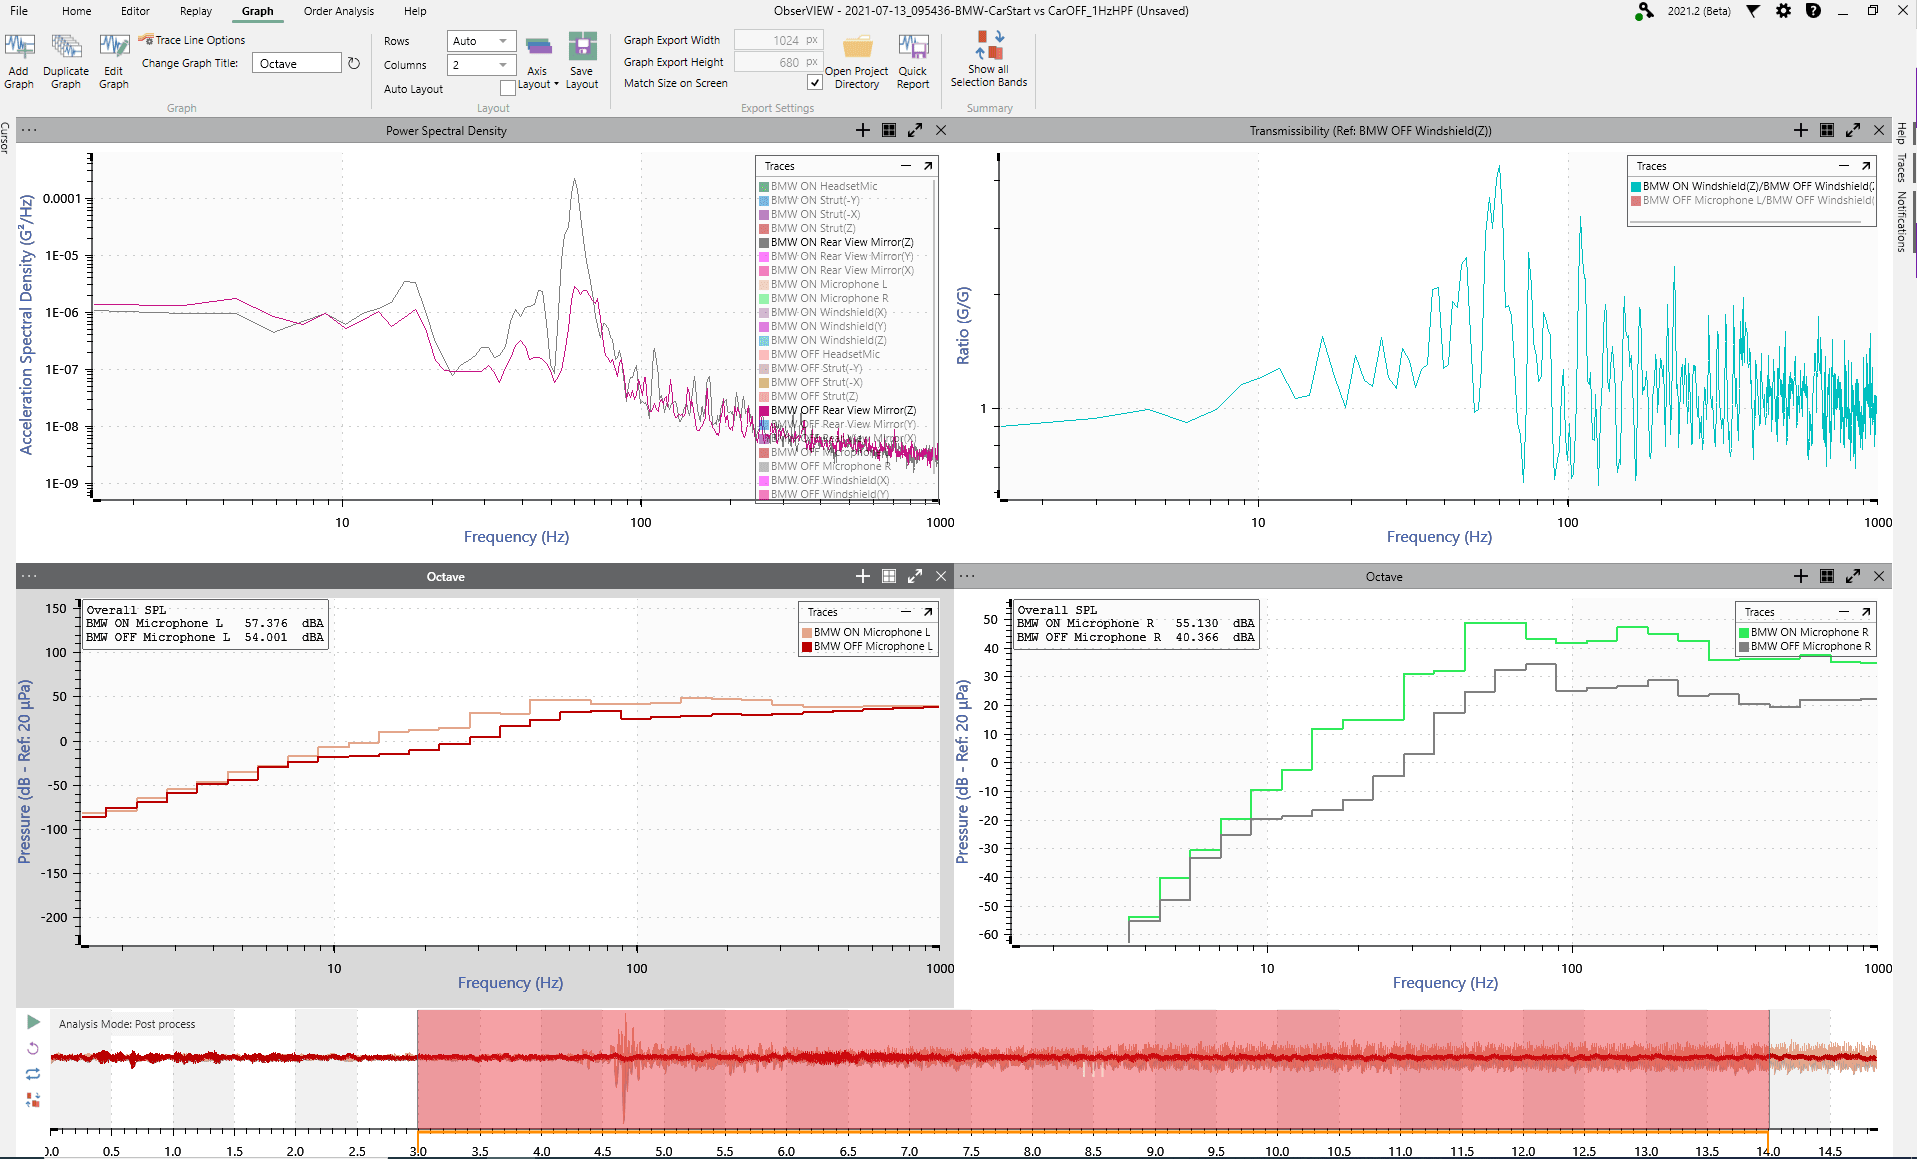 recording of the interior noise of a BMW